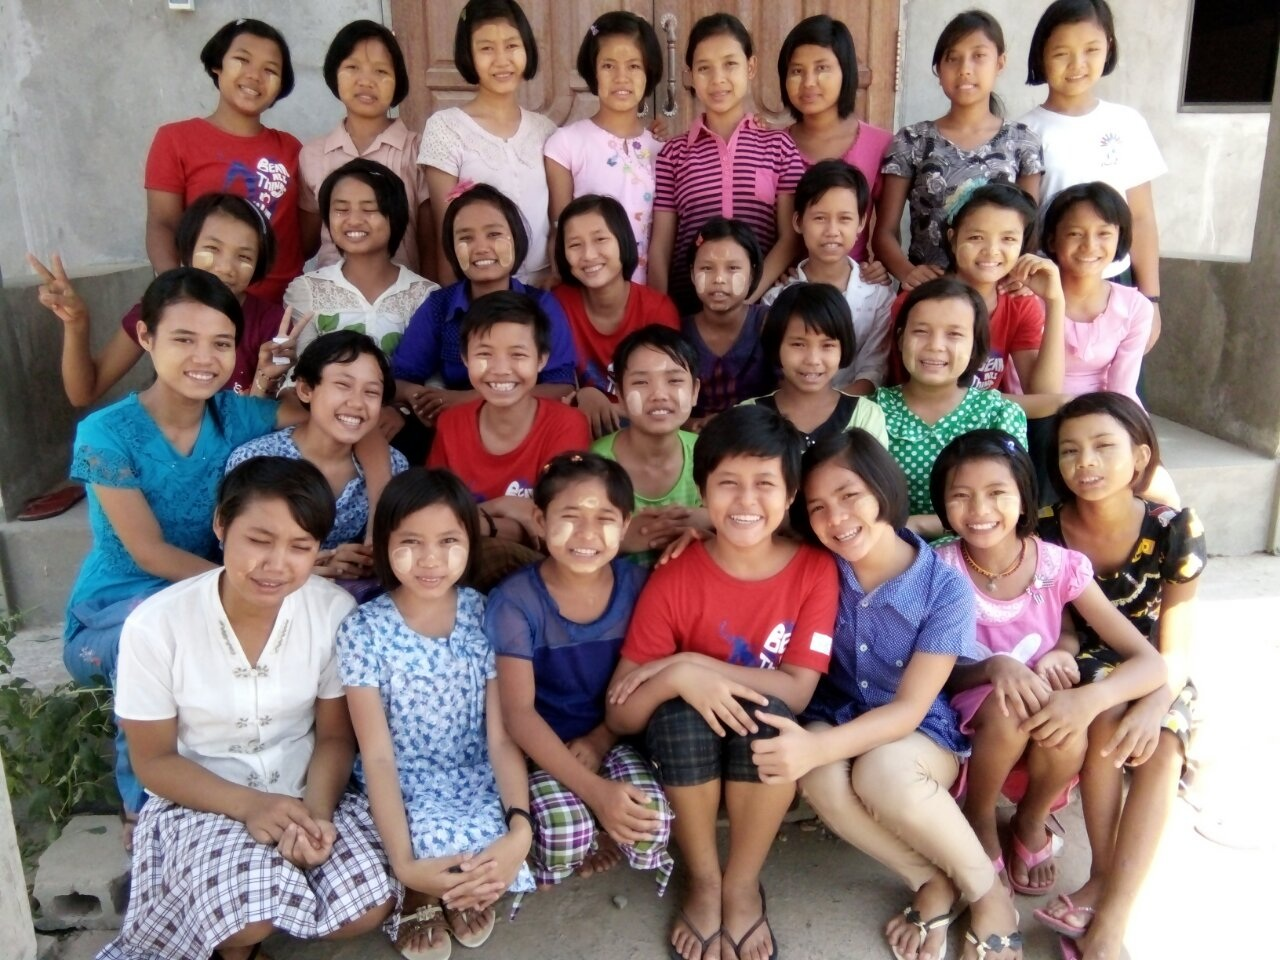 OUR YANGON GIRLS. THEY ARE ALWAYS READY TO HAVE THEIR PHOTO TAKEN.